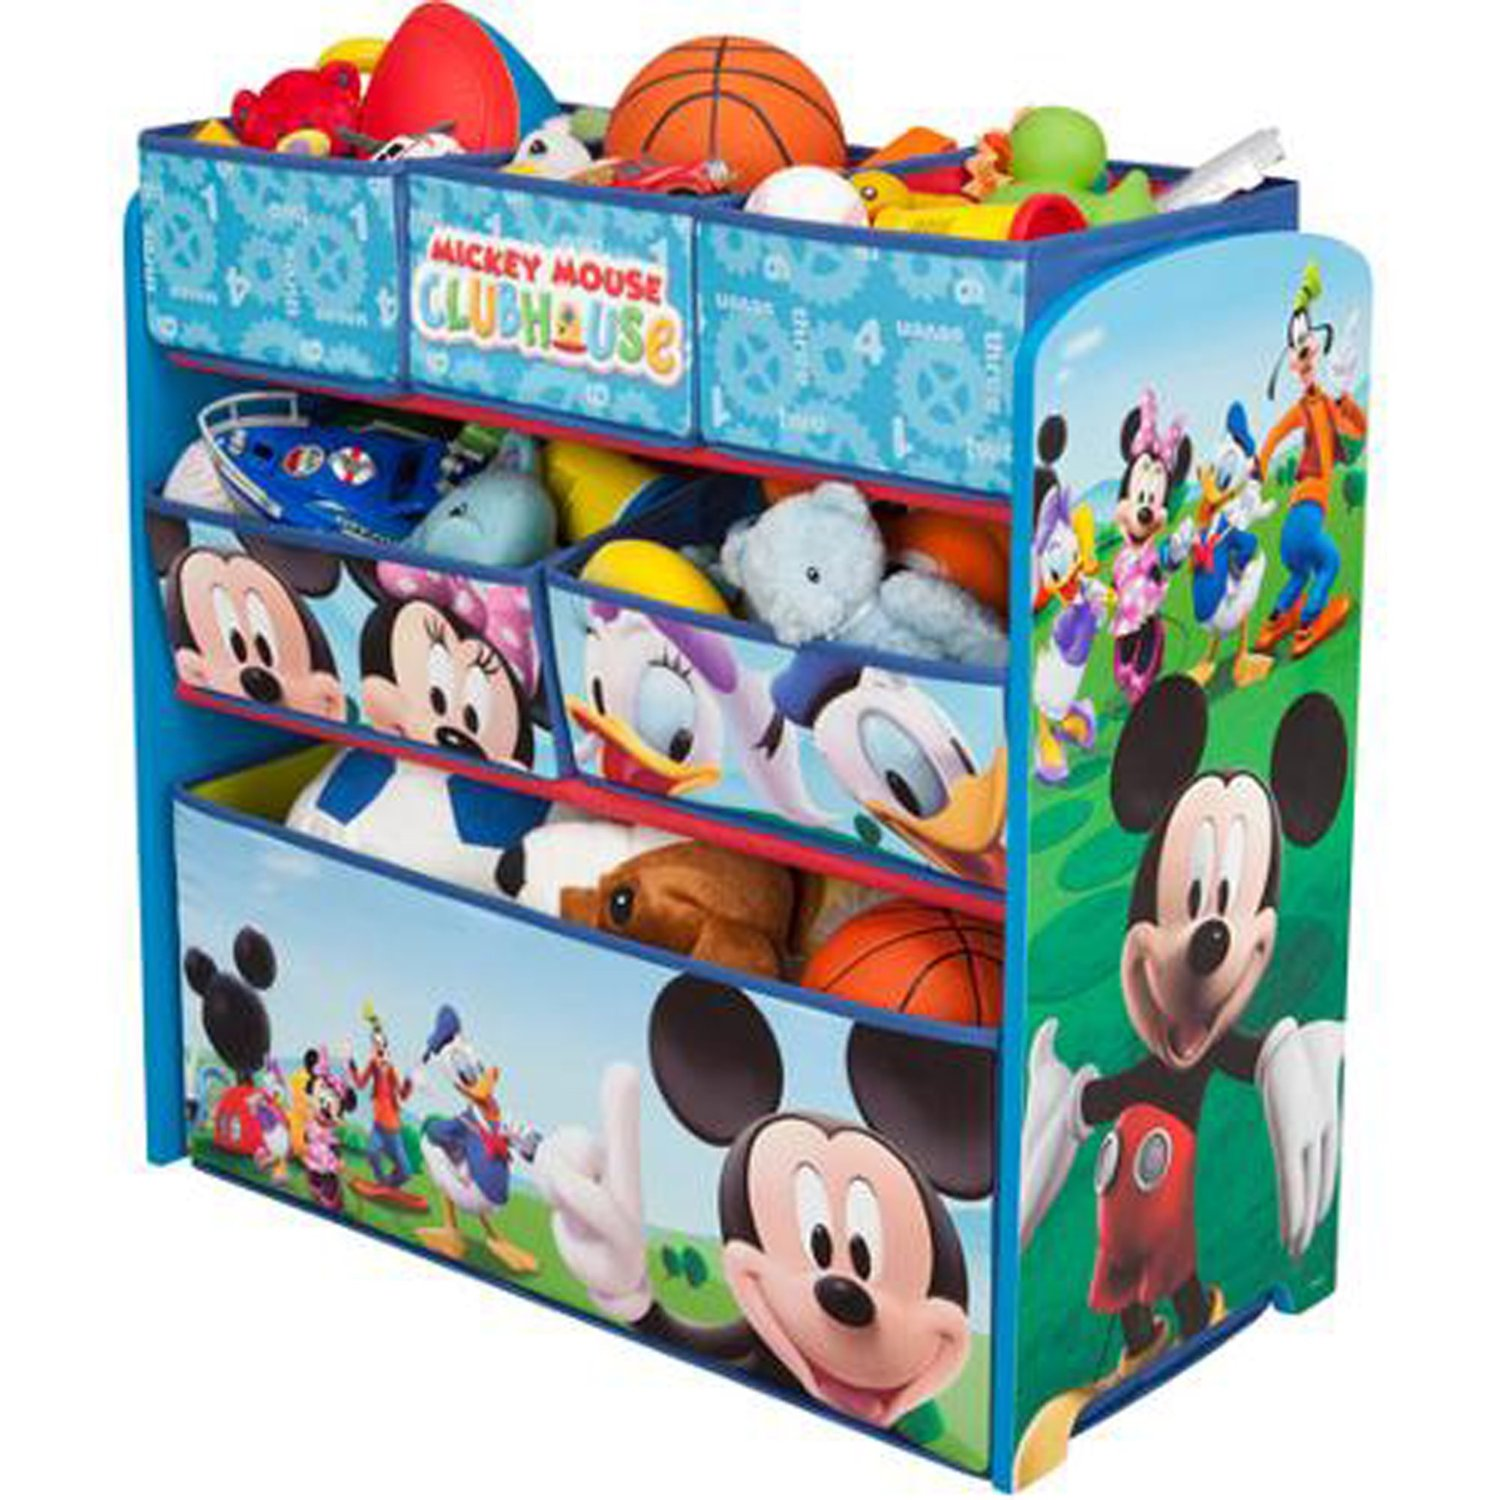 Disney Multi Bin Toy Organizer, Mickey Mouse Well-constructed Wood Design Sturdy Safe Storage Space Plenty of Room Clean-up Time Constructive Disney's Classic Cartoon Characters